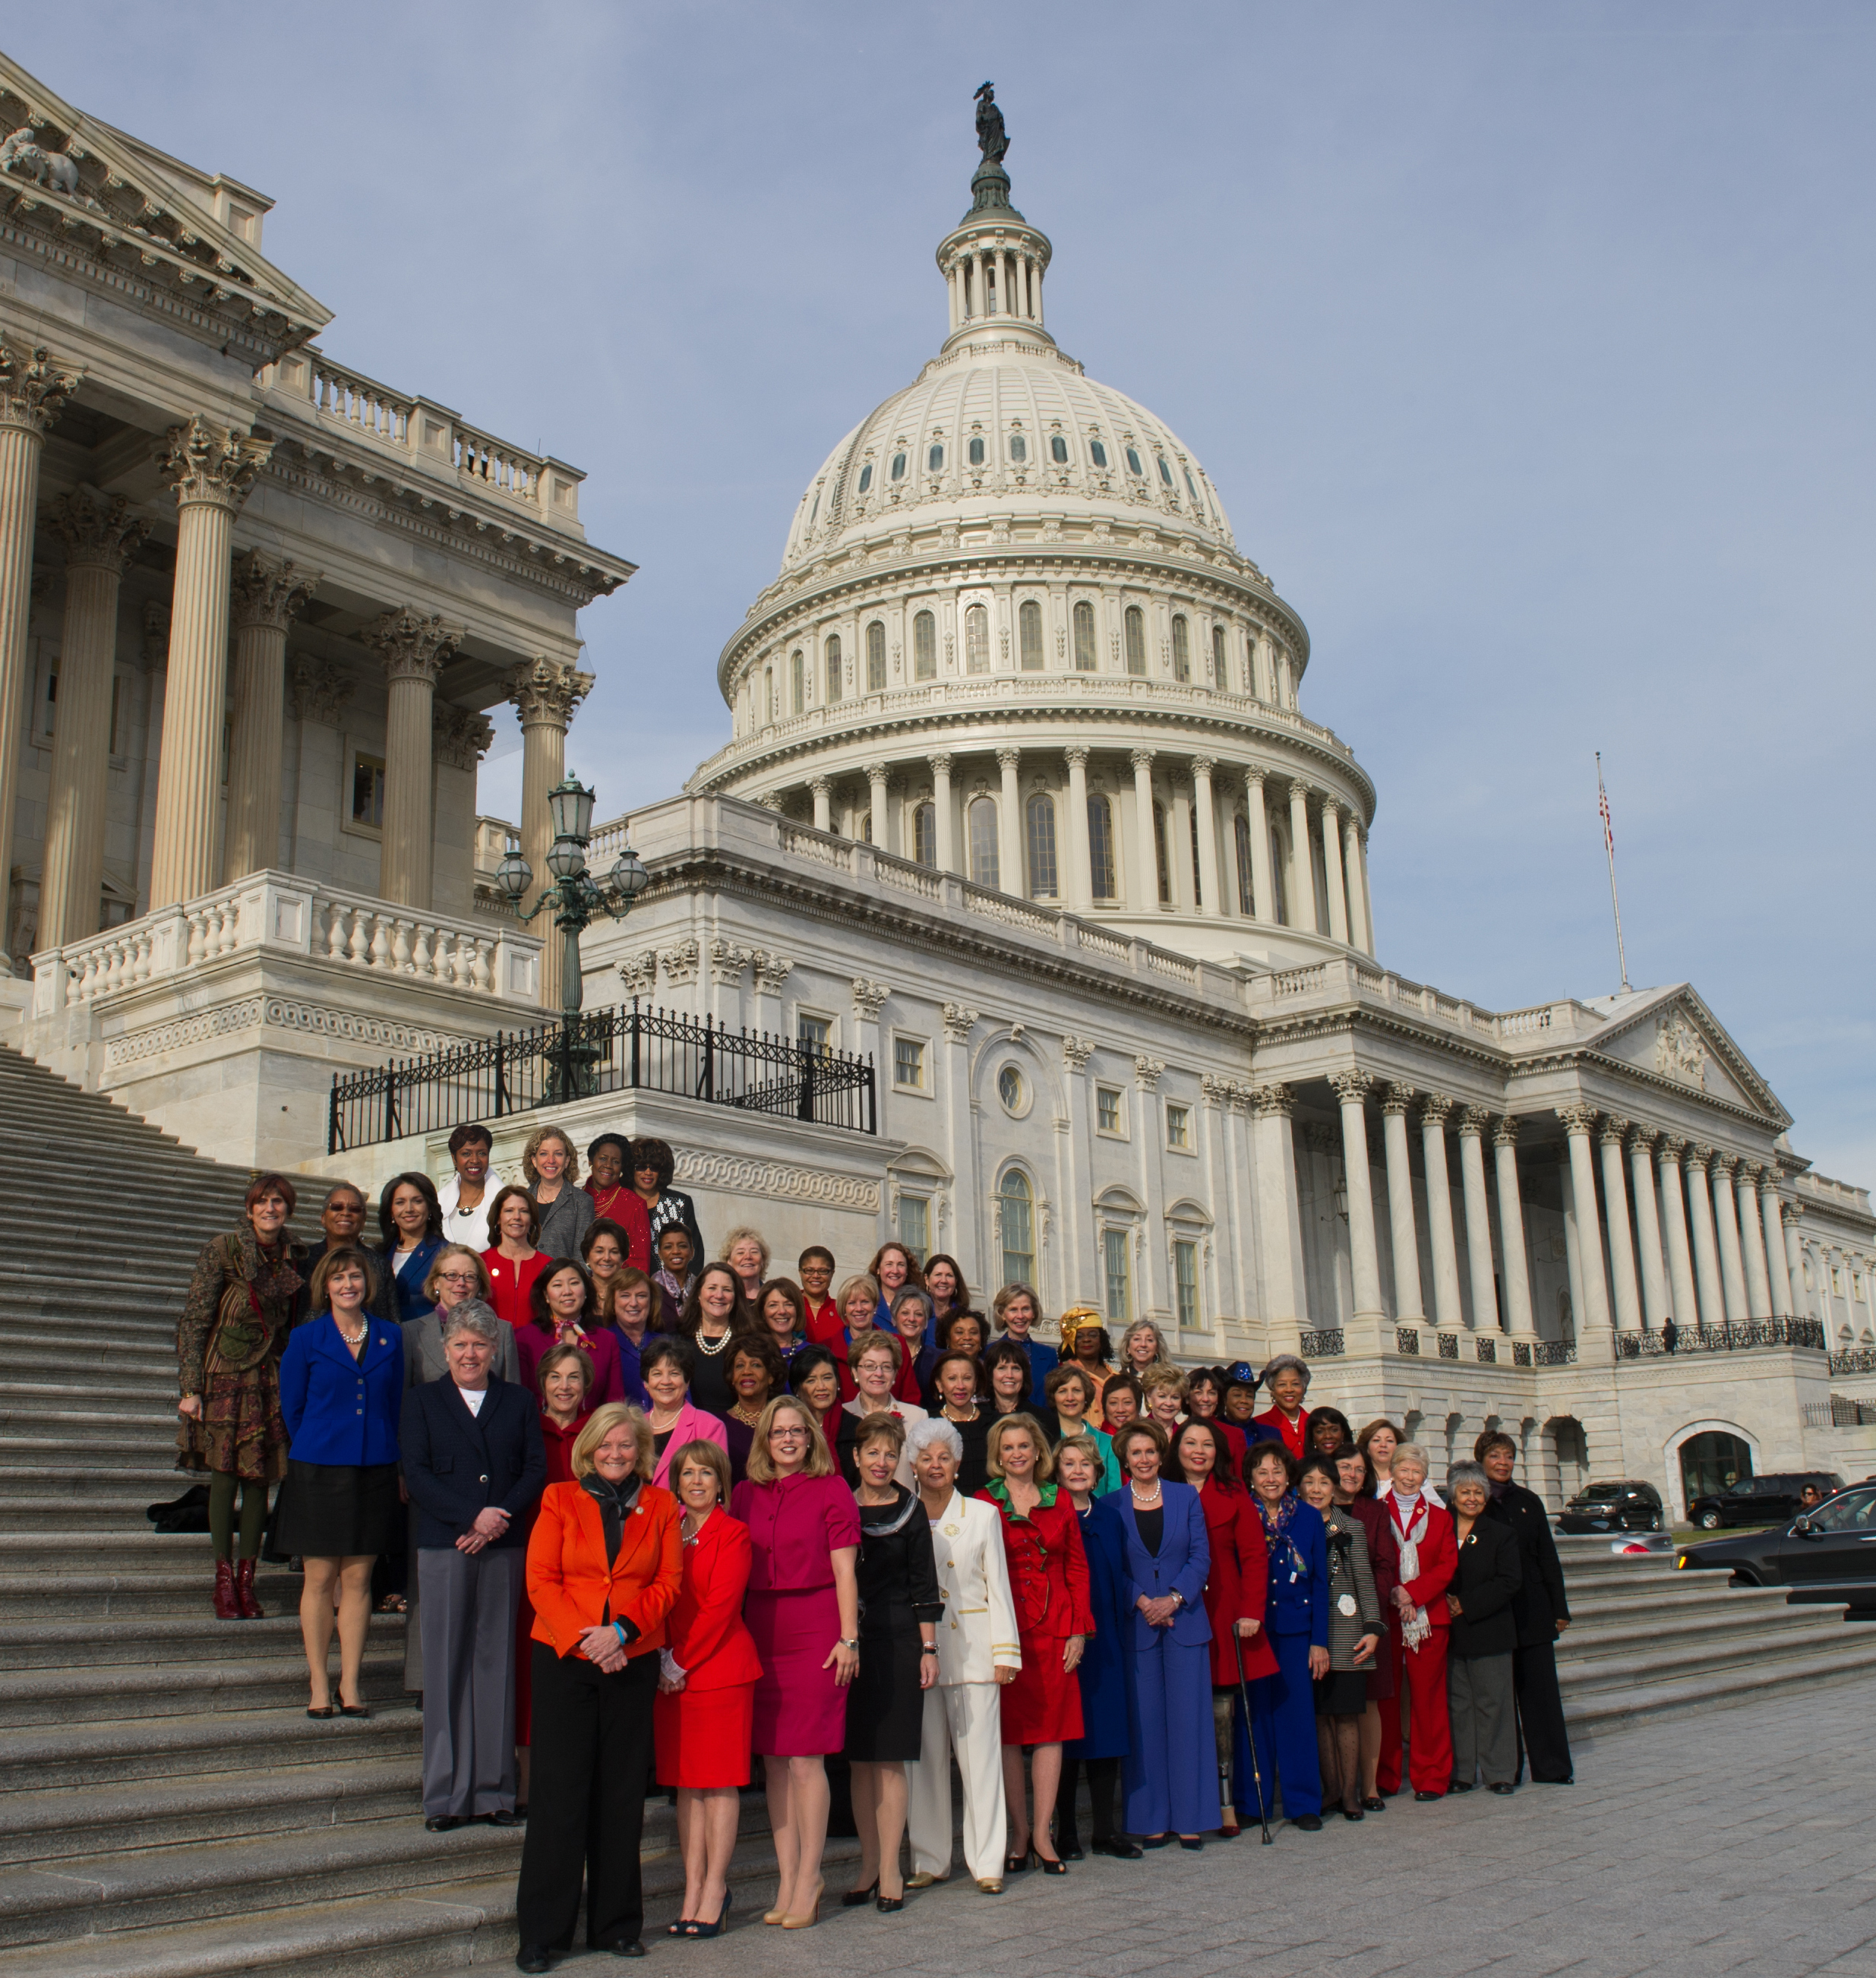 """The office of <a href=""""http://www.huffingtonpost.com/2013/01/04/nancy-pelosi-defends-alte_n_2410063.html"""" target=""""_blank"""">Nancy Pelosi</a> (D-Calif.) photoshopped several female members into a photograph in order to include all of the women in the House Democratic Caucus."""